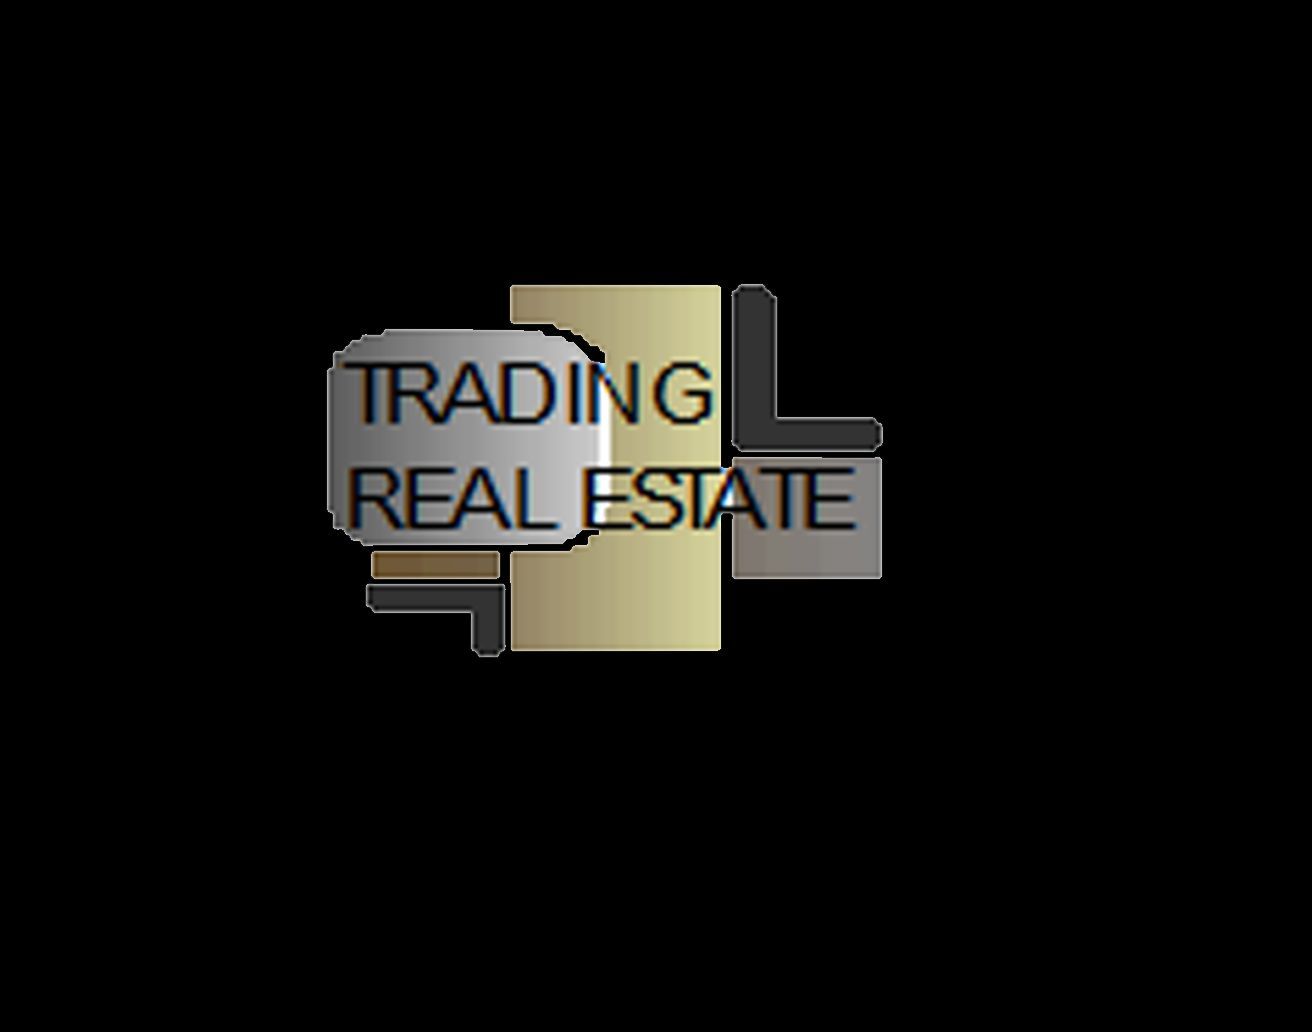 TRADING REAL ESTATE SRL